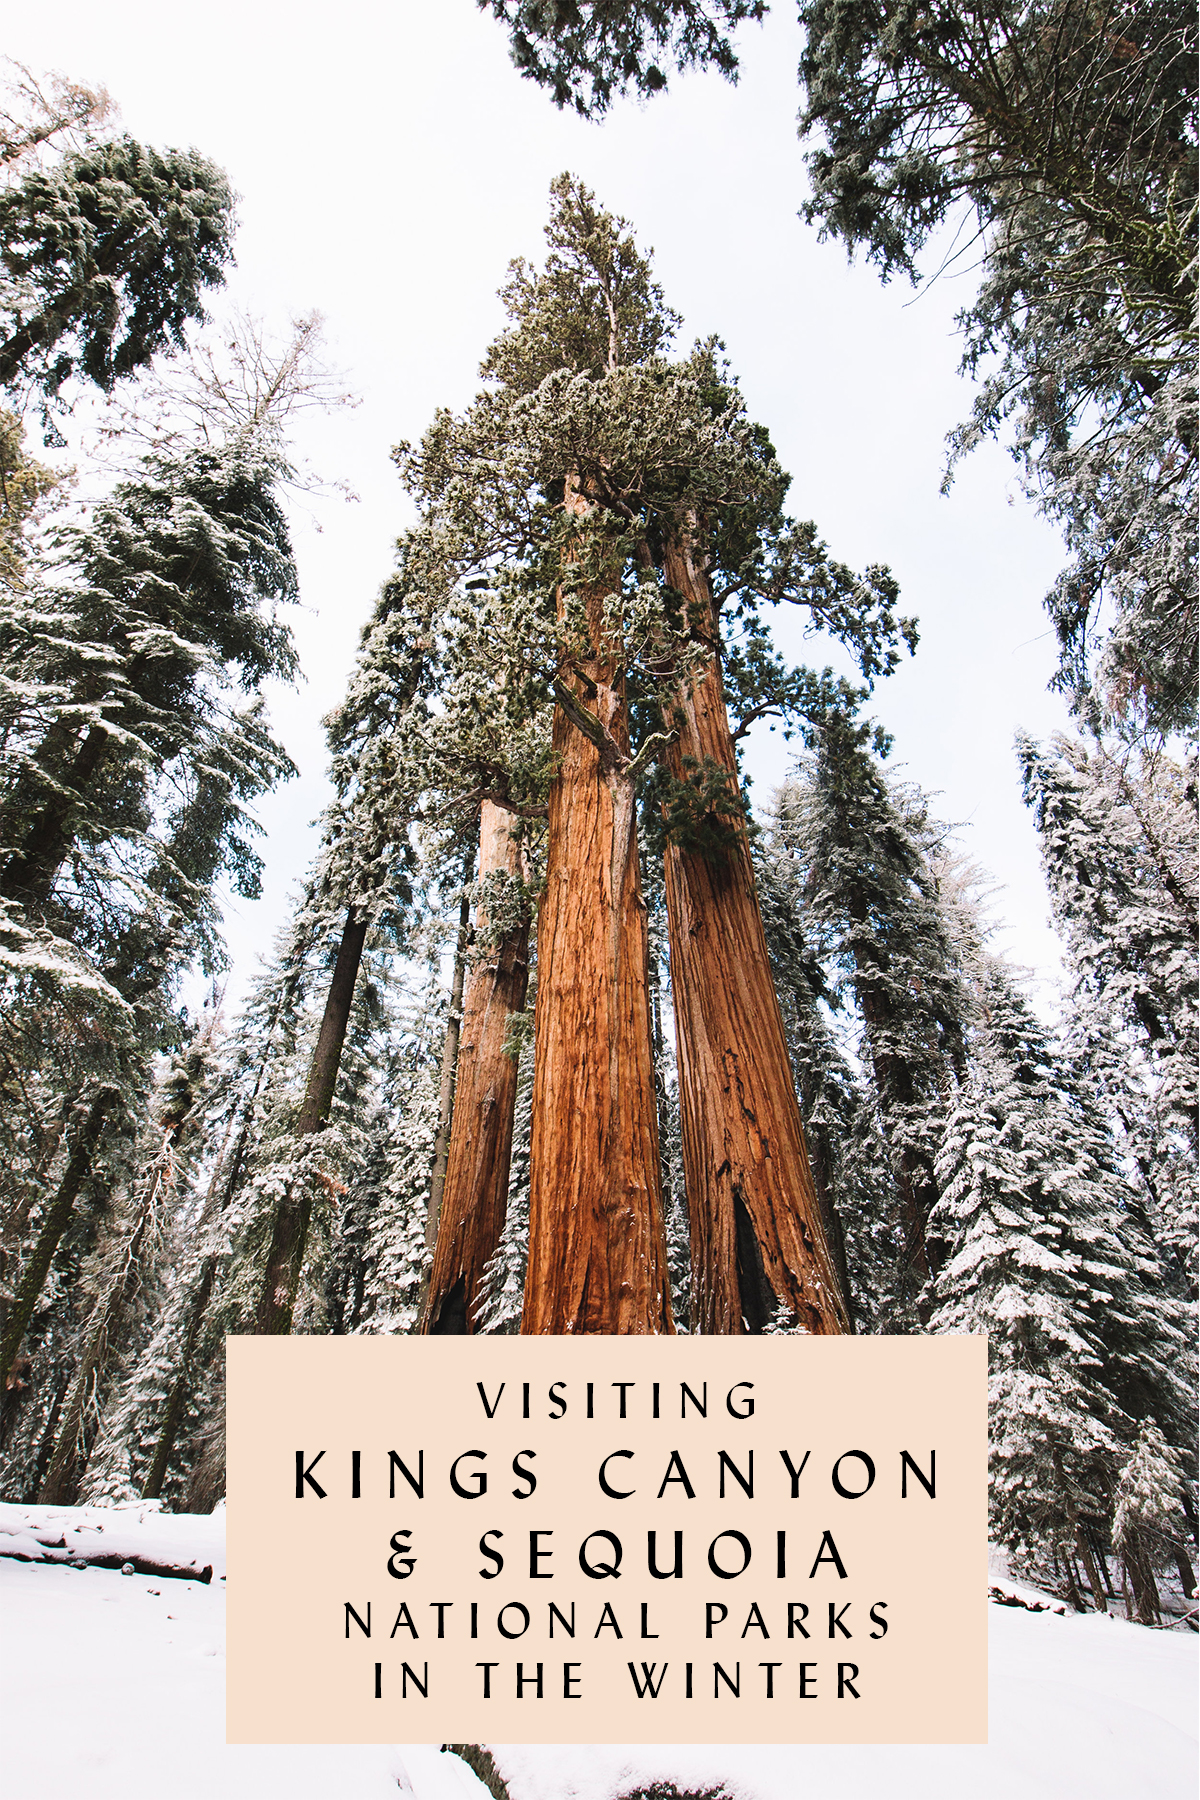 Visiting Kings Canyon and Sequoia National Parks in the Winter